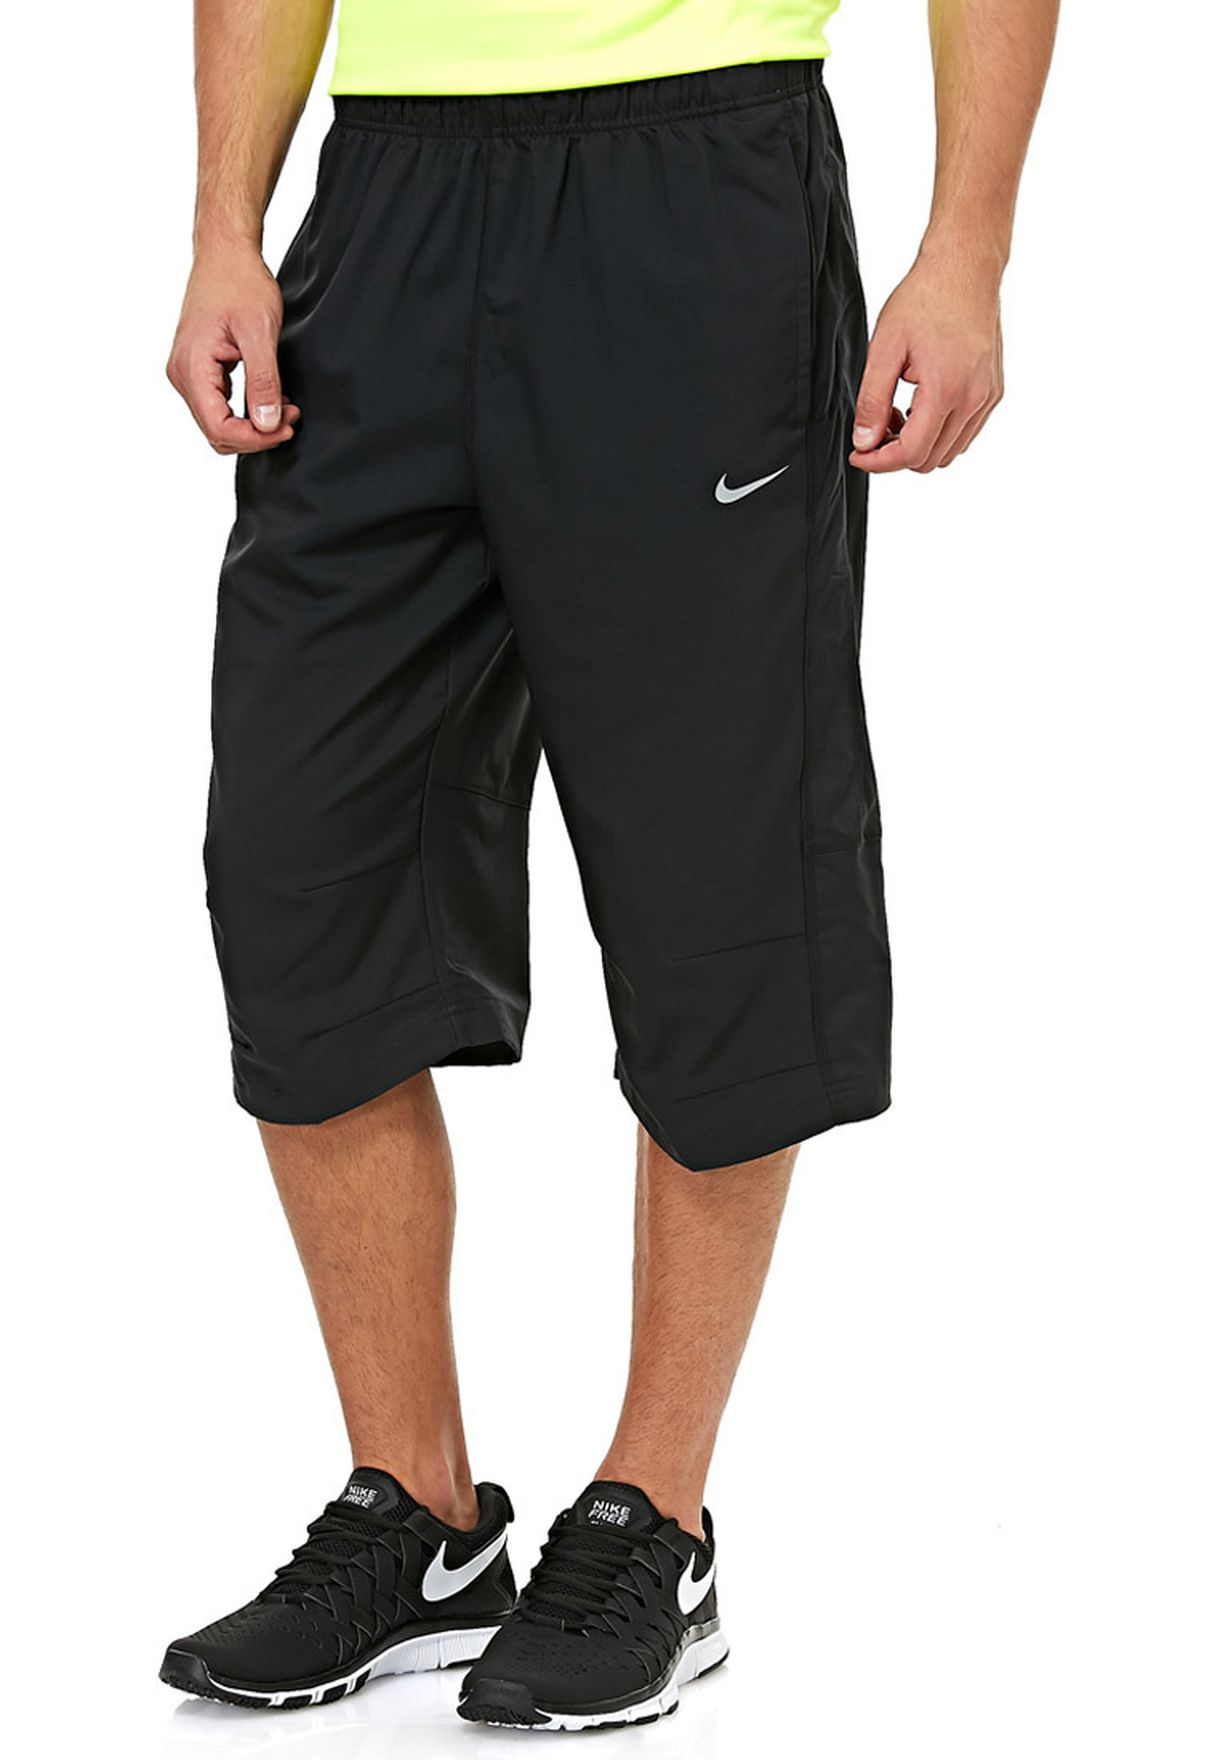 escucha Completamente seco Abuelo  Buy Nike black Team Woven 3/4 Pant for Men in Kuwait city, other cities |  377784-010